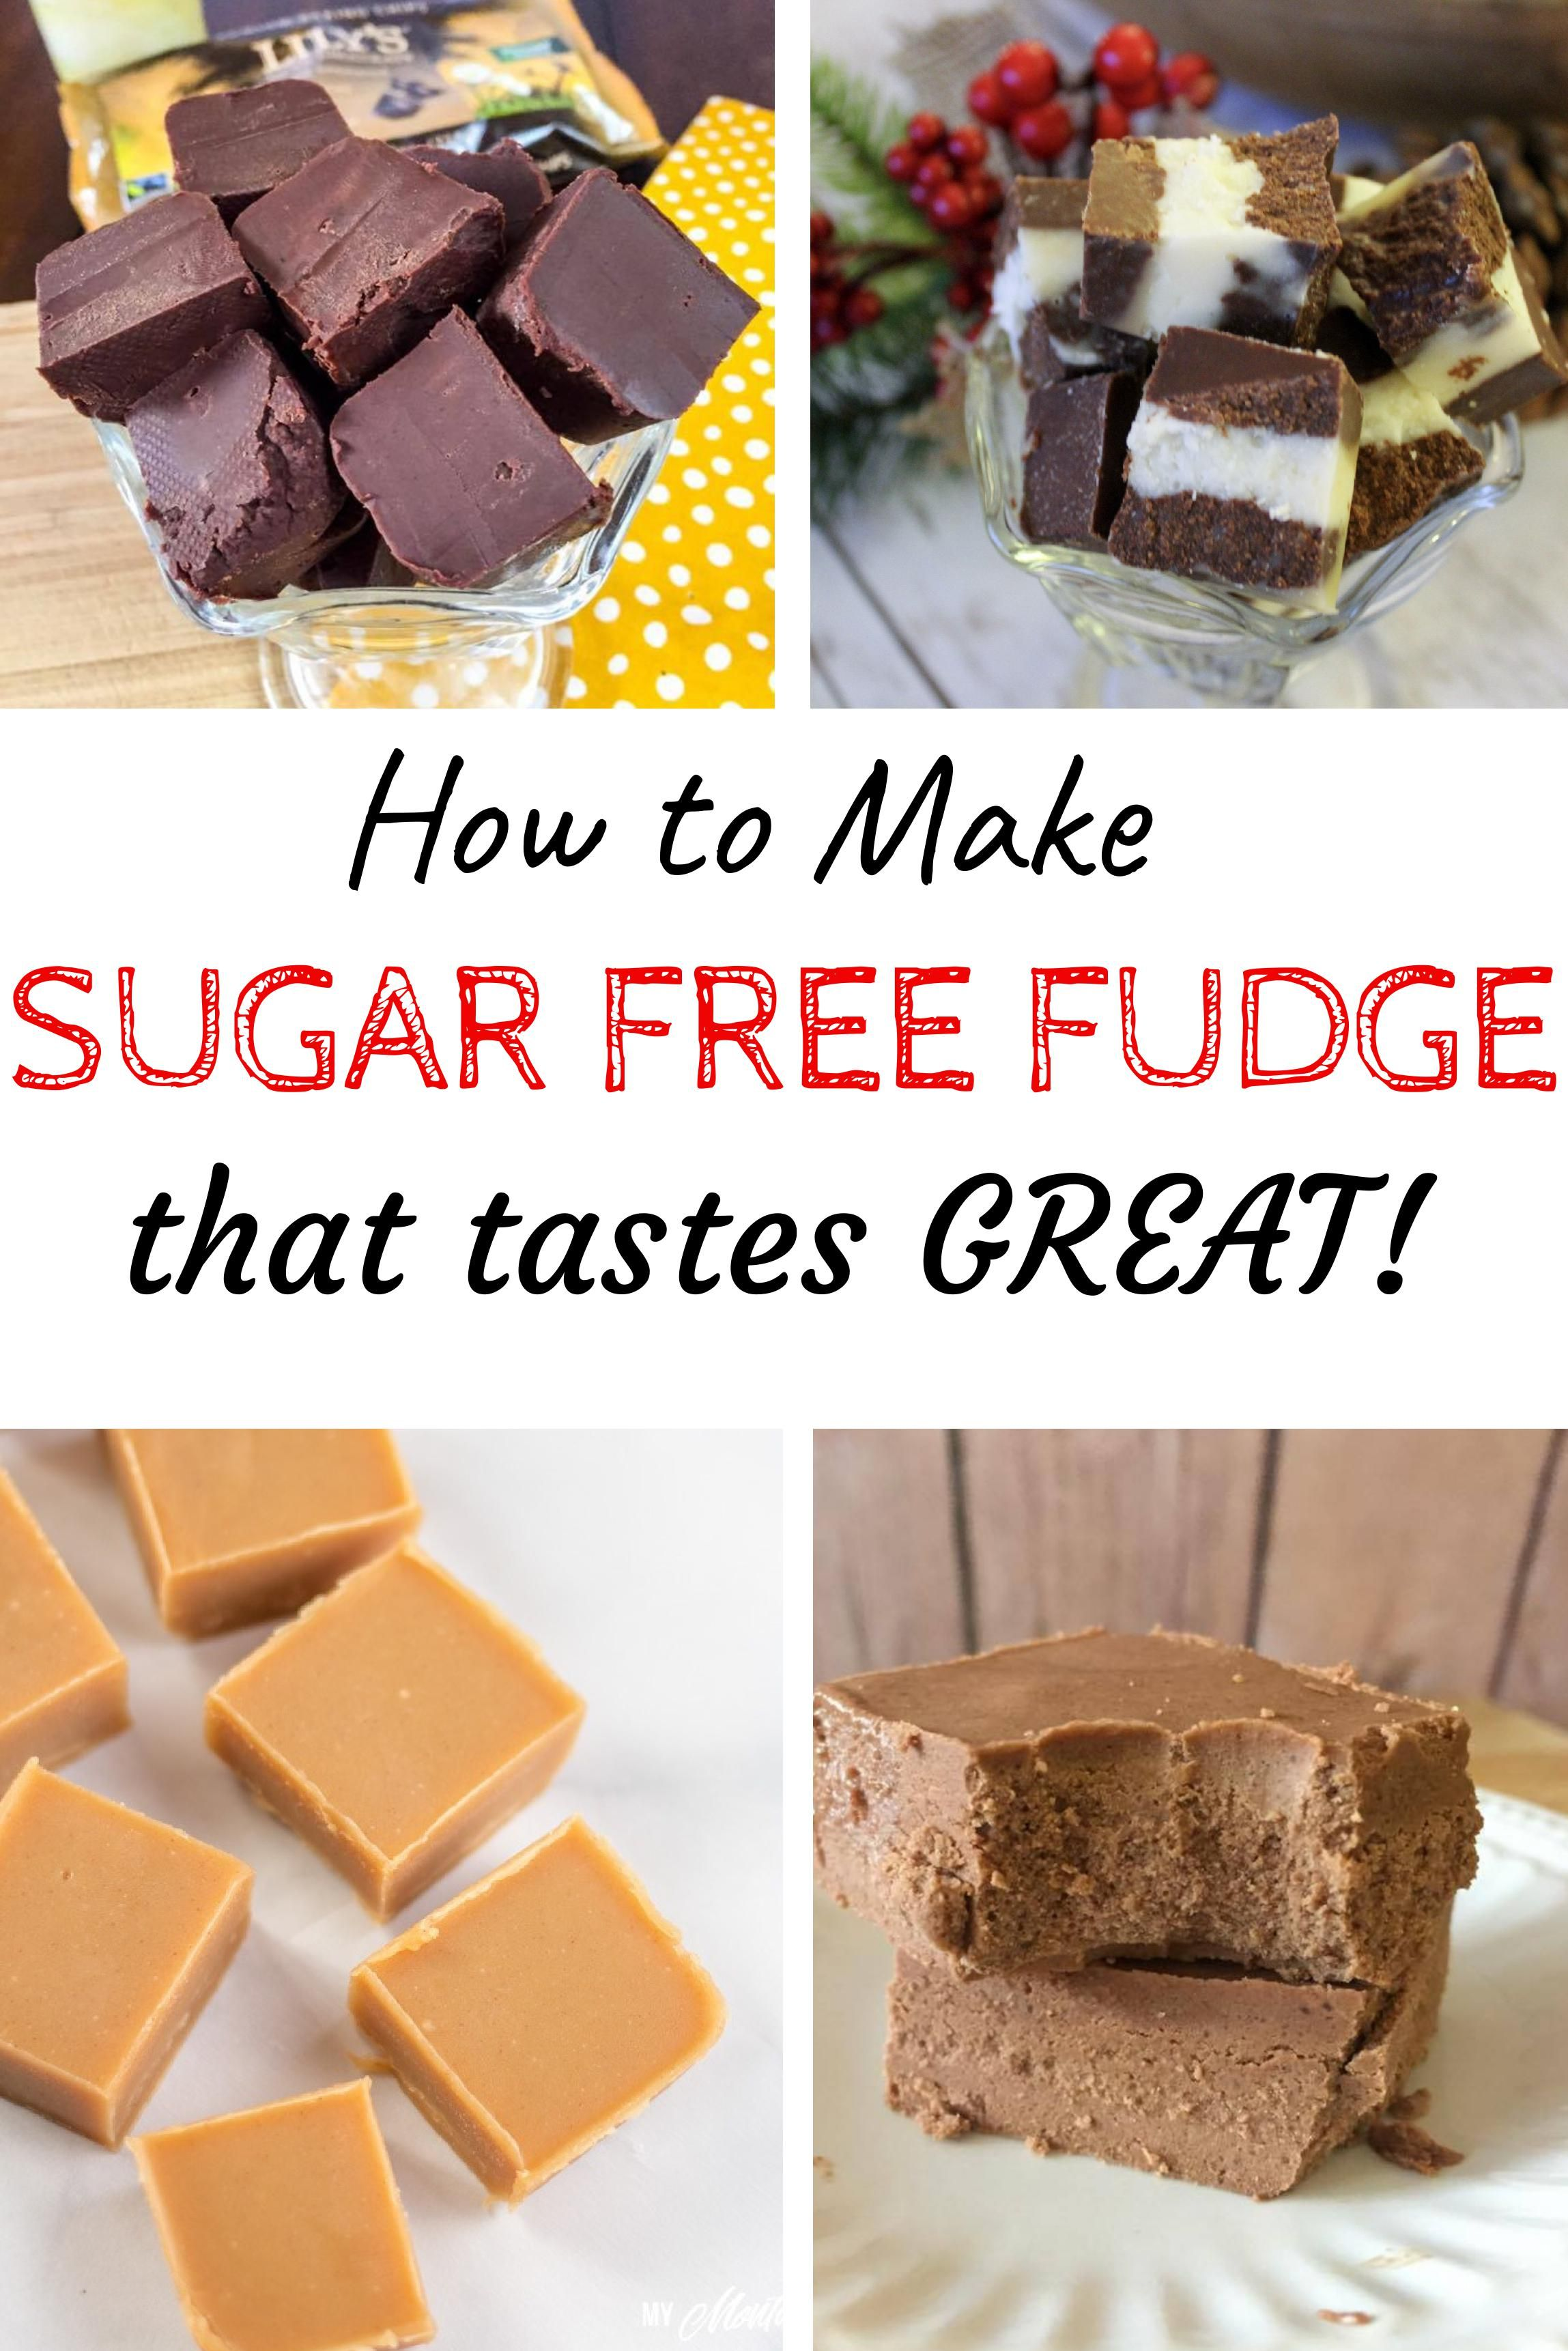 5 Sugar Free Fudge Recipes You Have to Try!   My Montana Kitchen